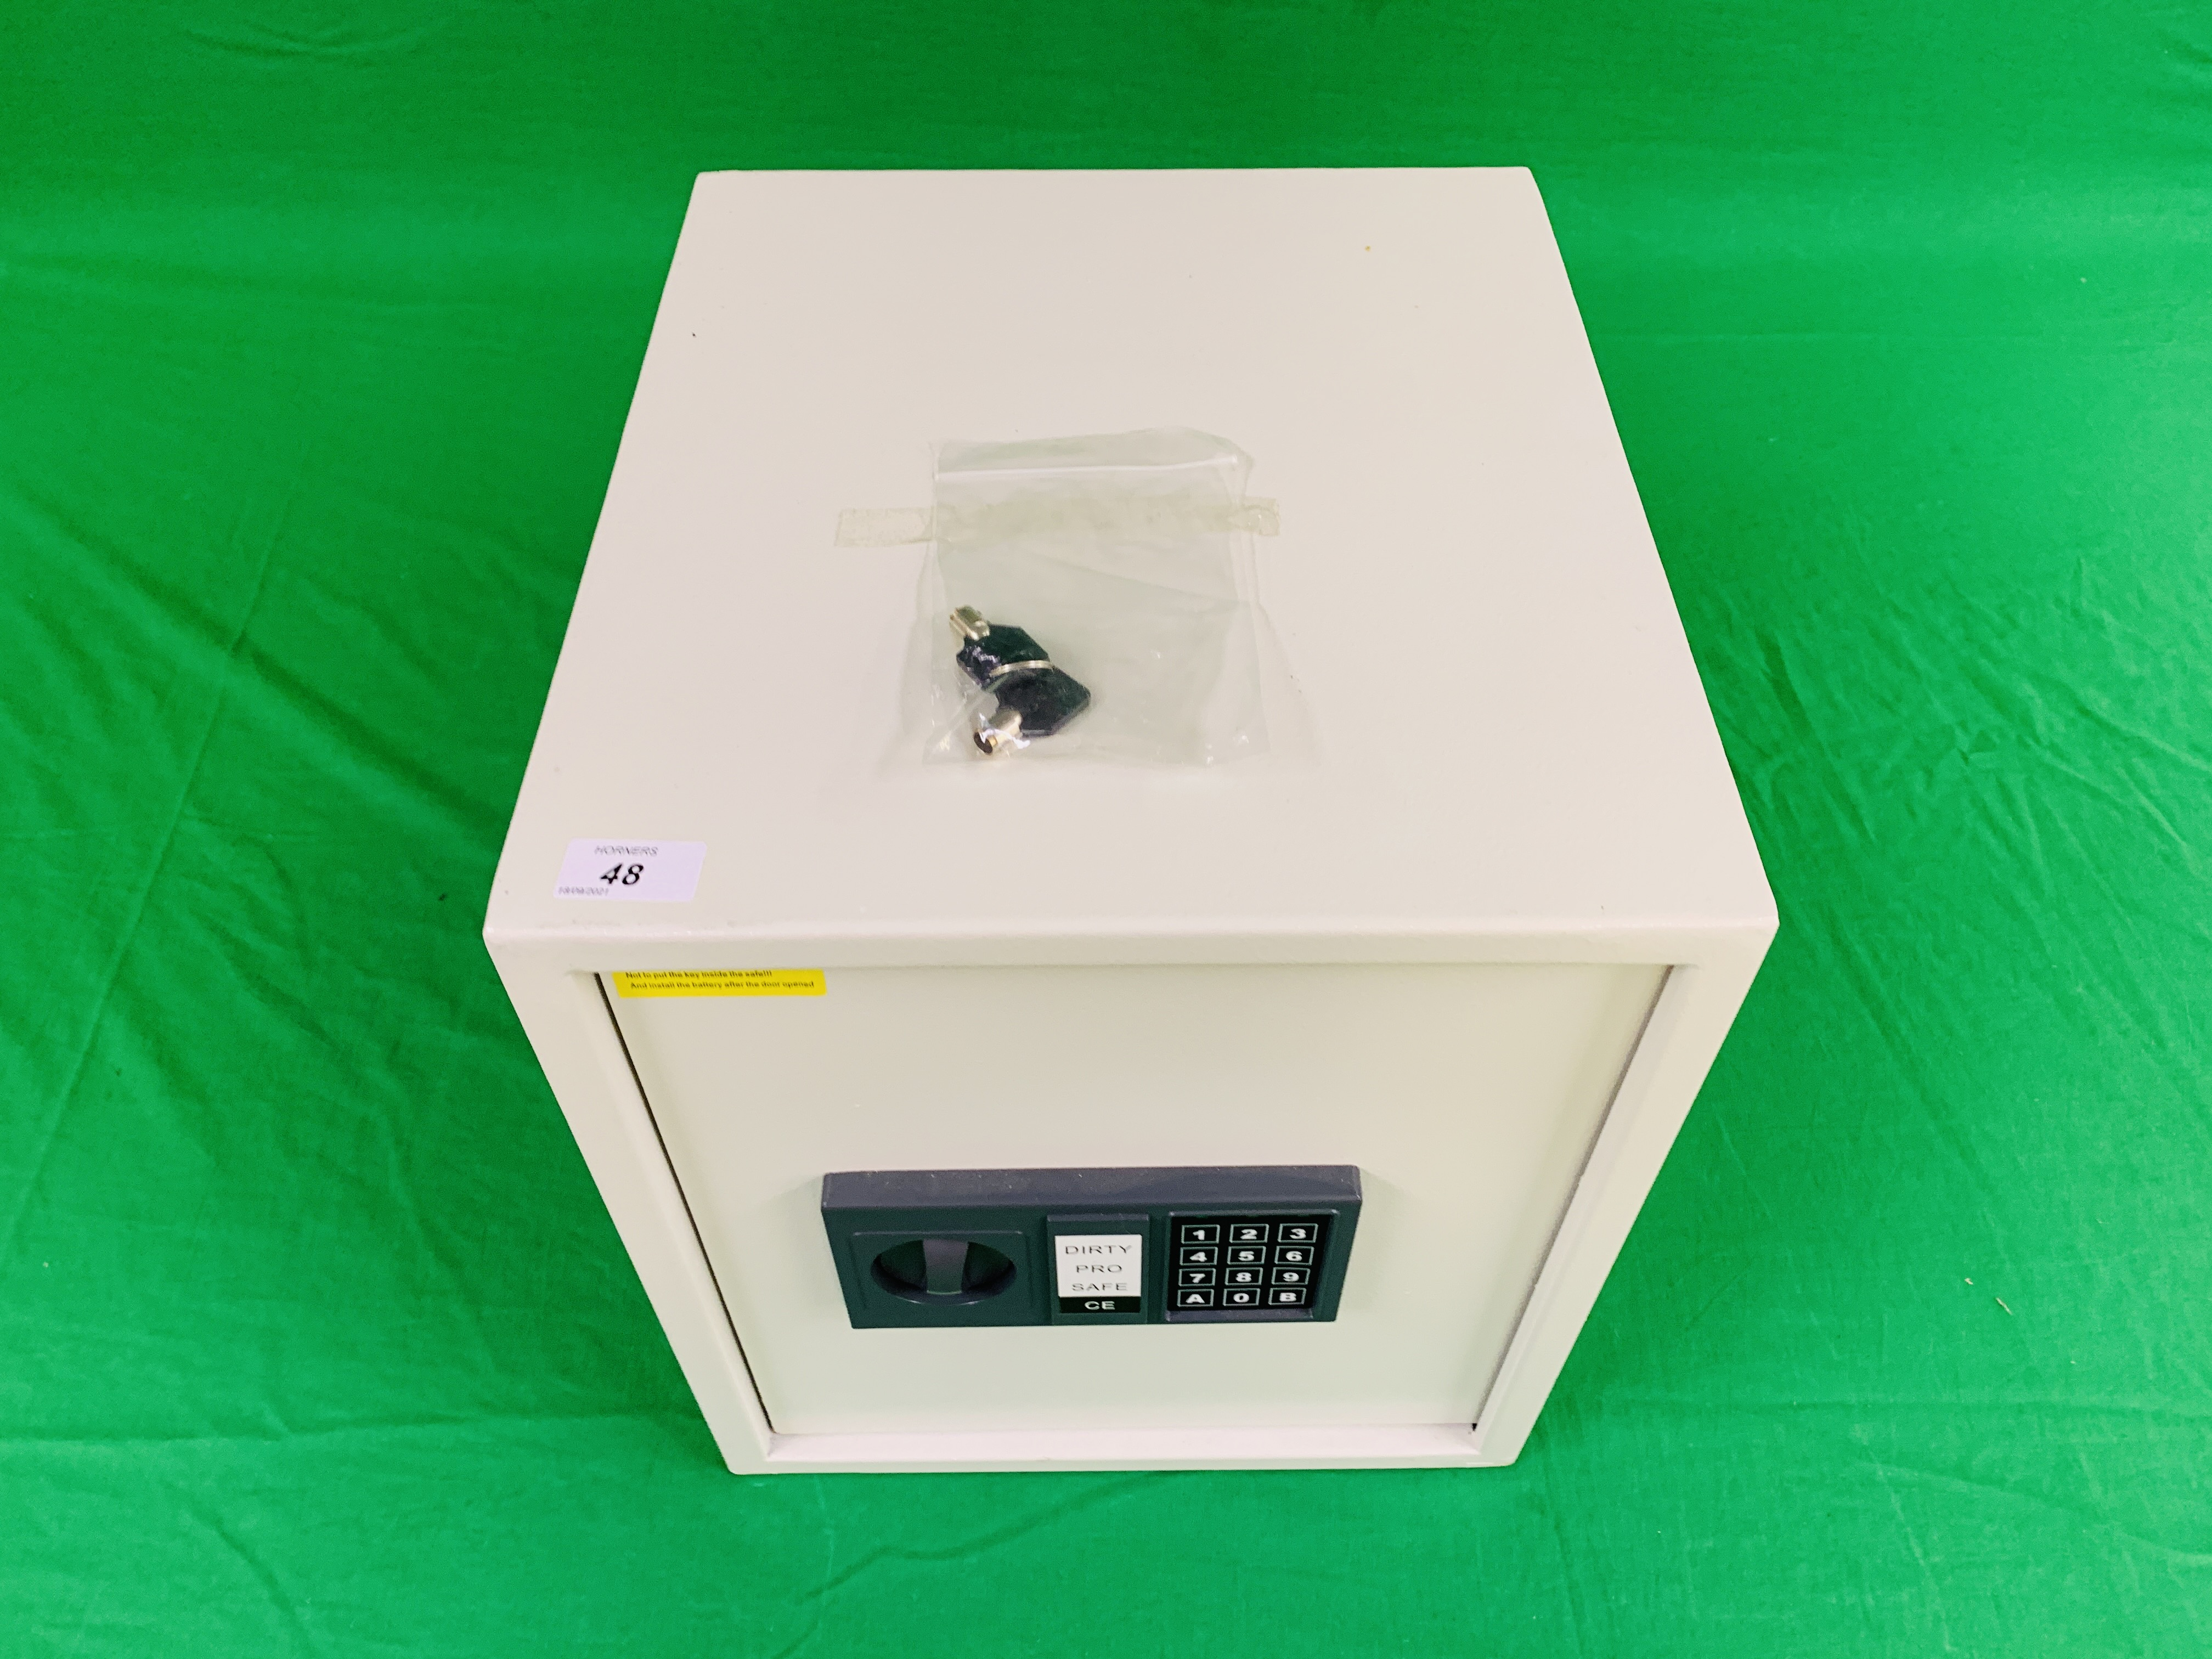 DIRTY PRO SAFE CE ELECTRIC COMBINATION SAFE COMPLETE WITH INSTRUCTIONS ALONG WITH FOUR AS NEW AMTA - Image 2 of 8